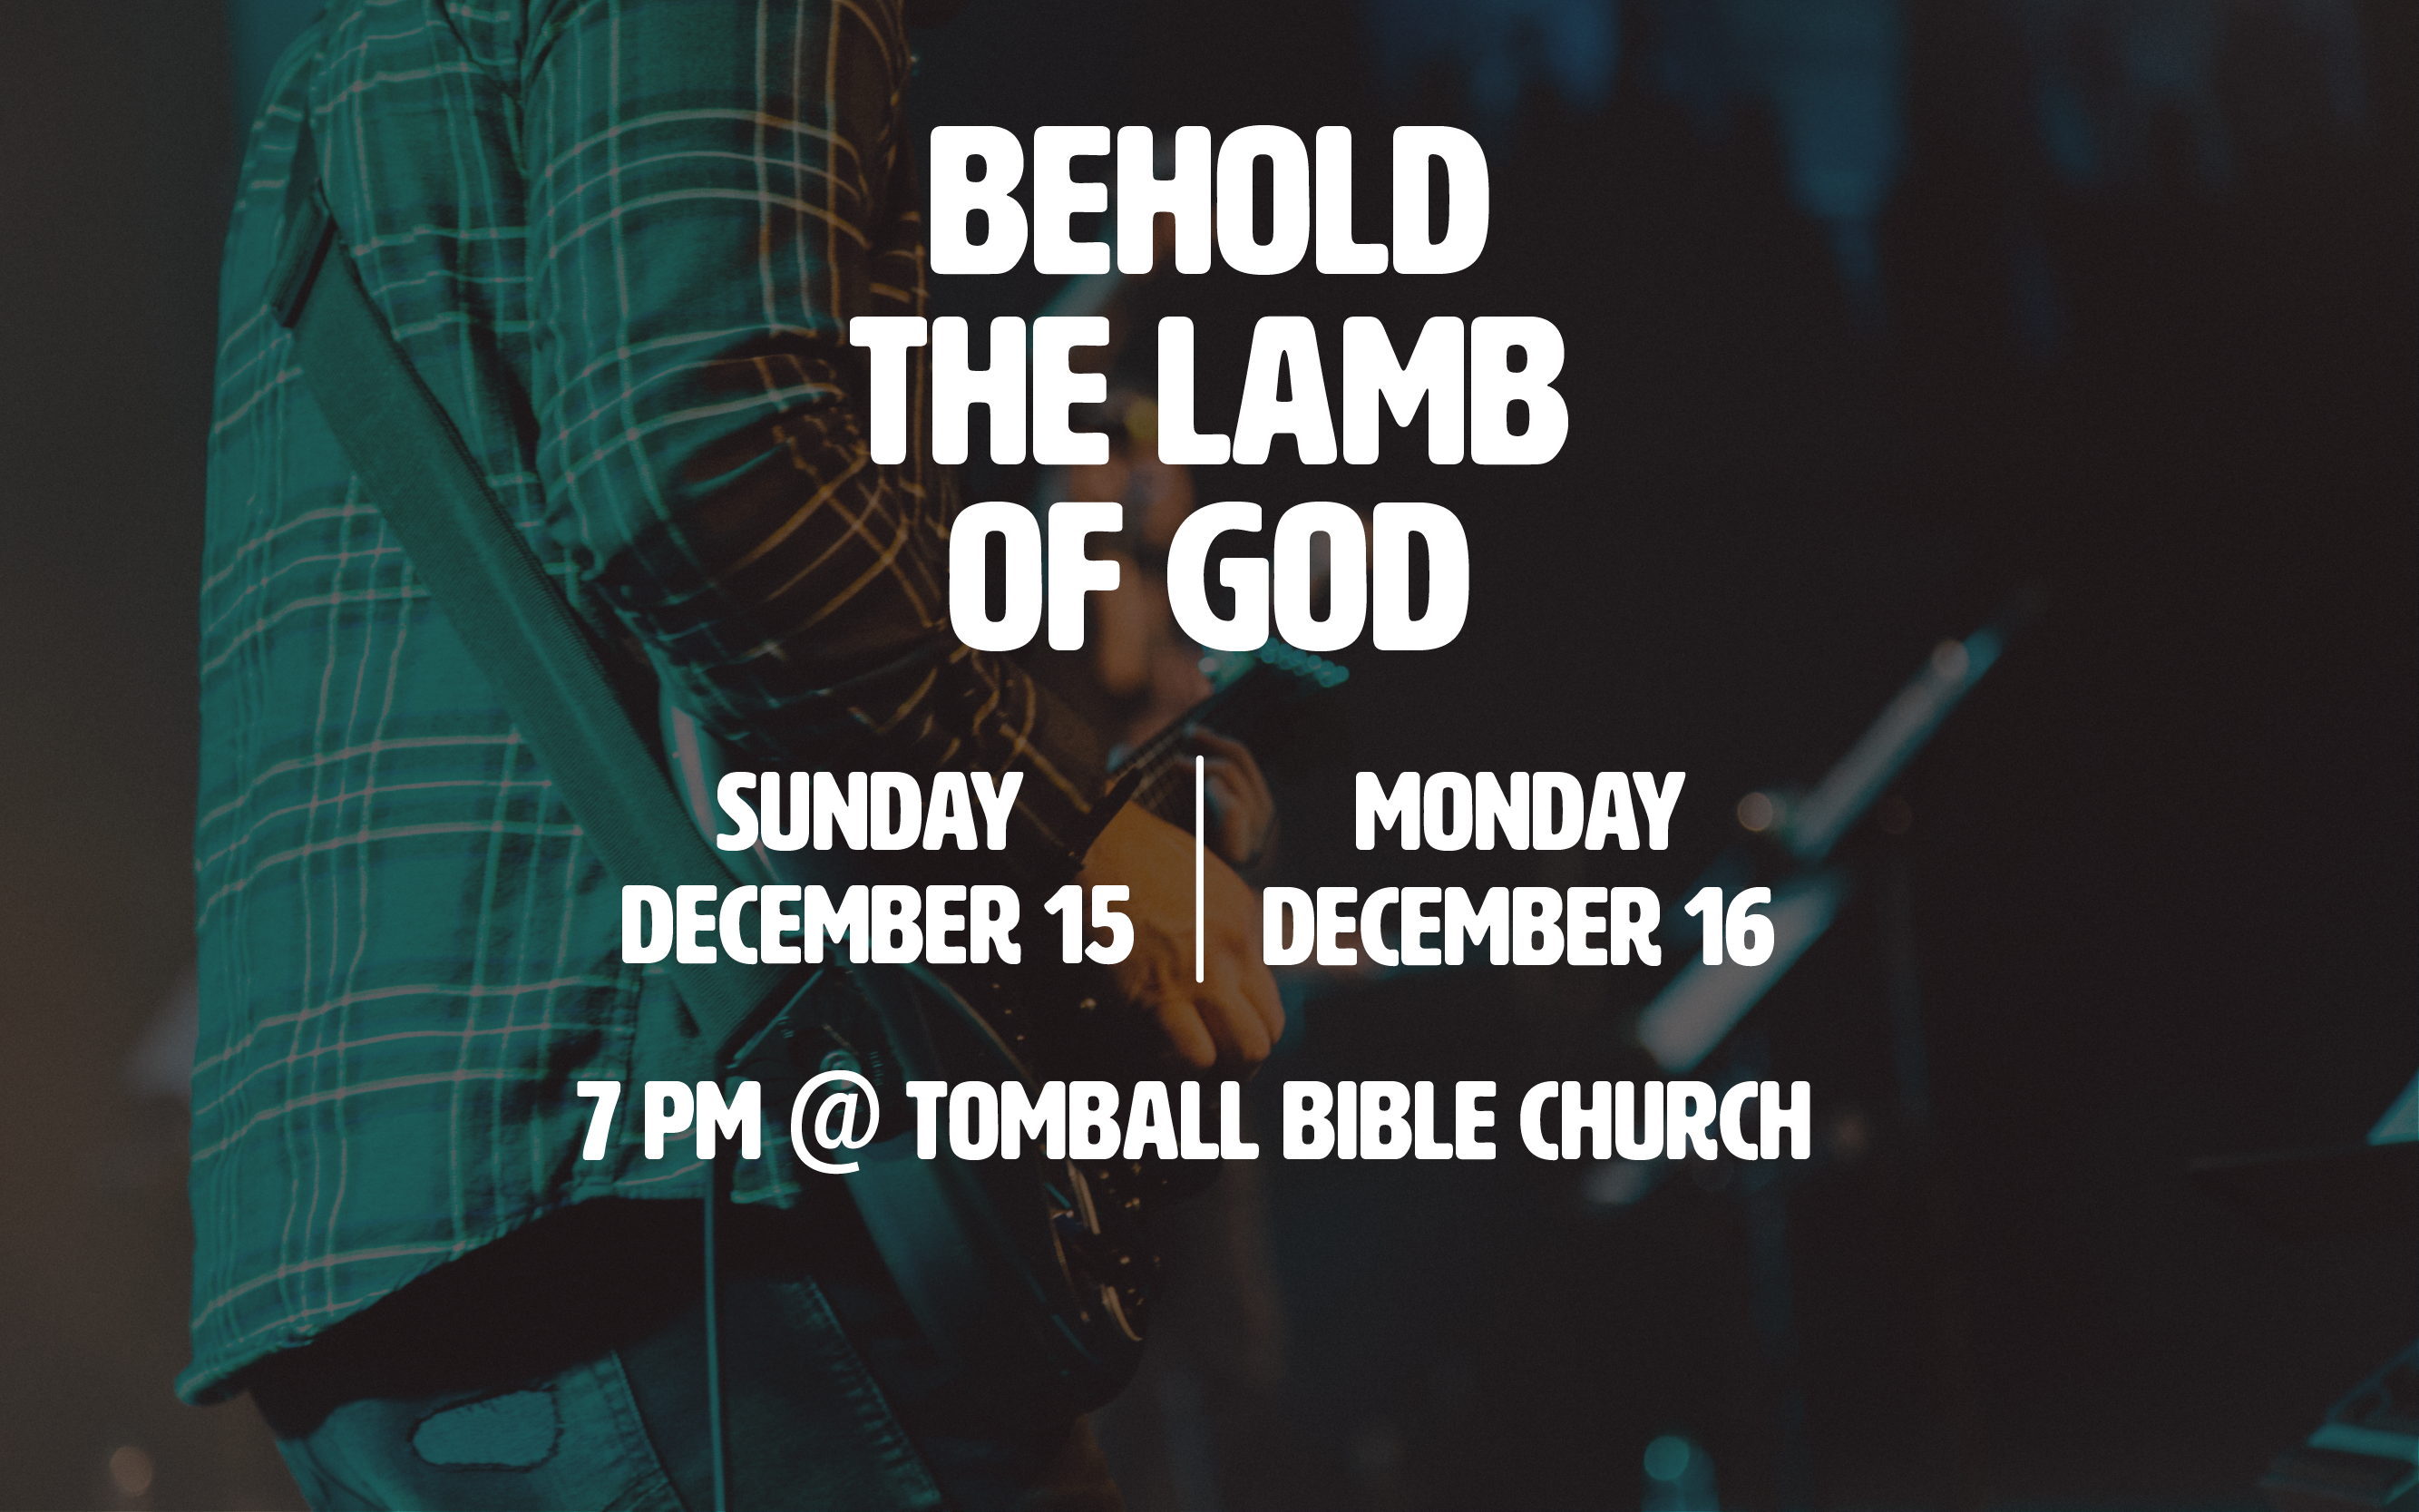 Behold the Lamb 2019-01 image